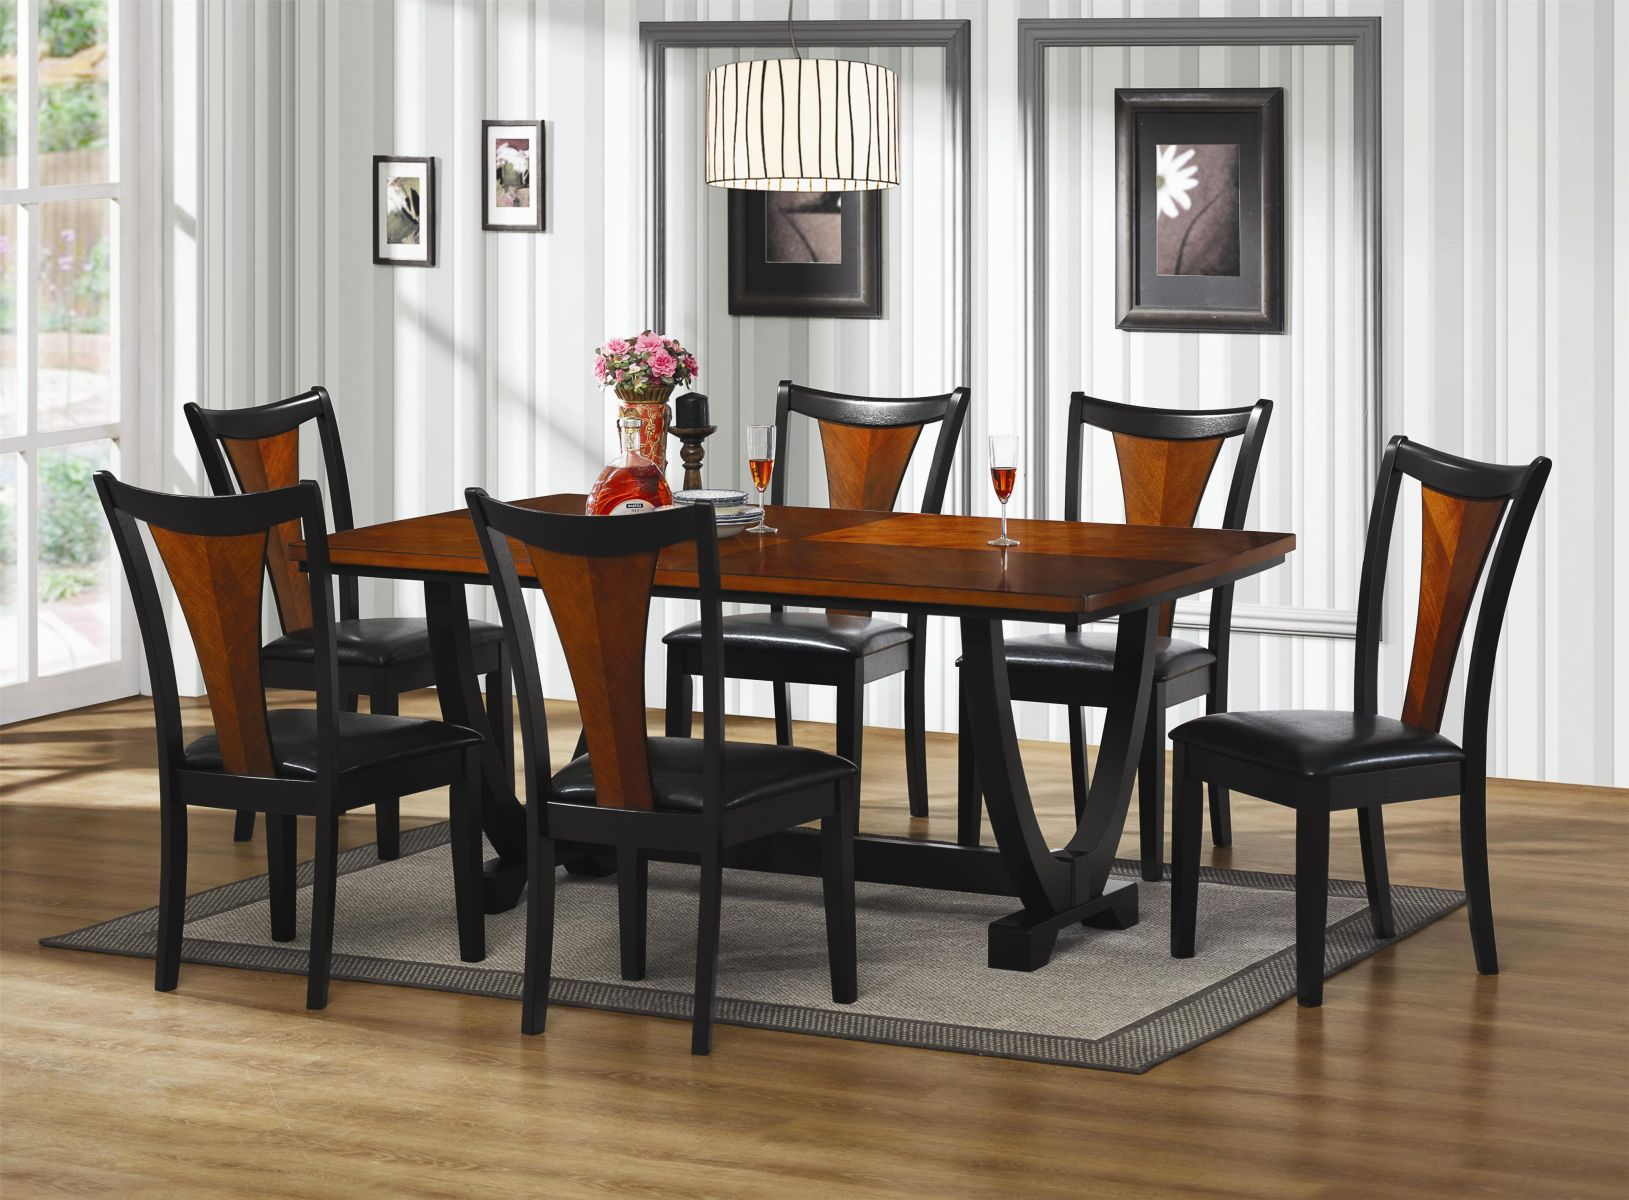 Furnitures Fashion Small Dining Room Furniture Design: Small Dinette Set Design